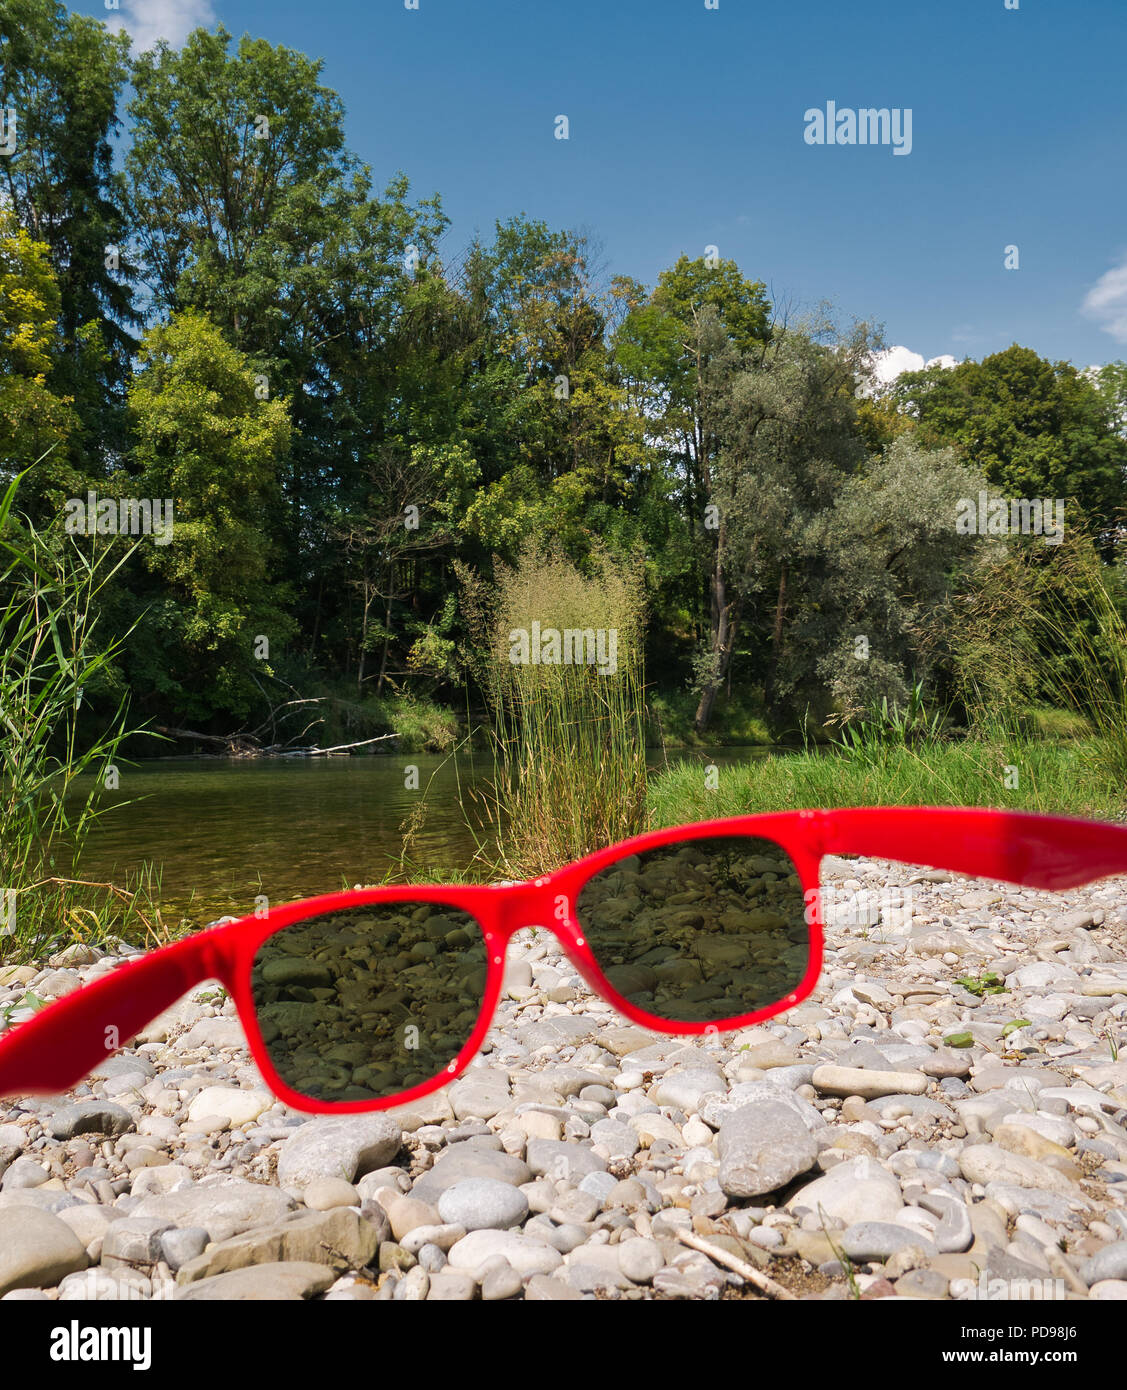 Looking through a red sunglasses at the stones on the bank of the river Isar in Munich with trees in the background - Stock Image